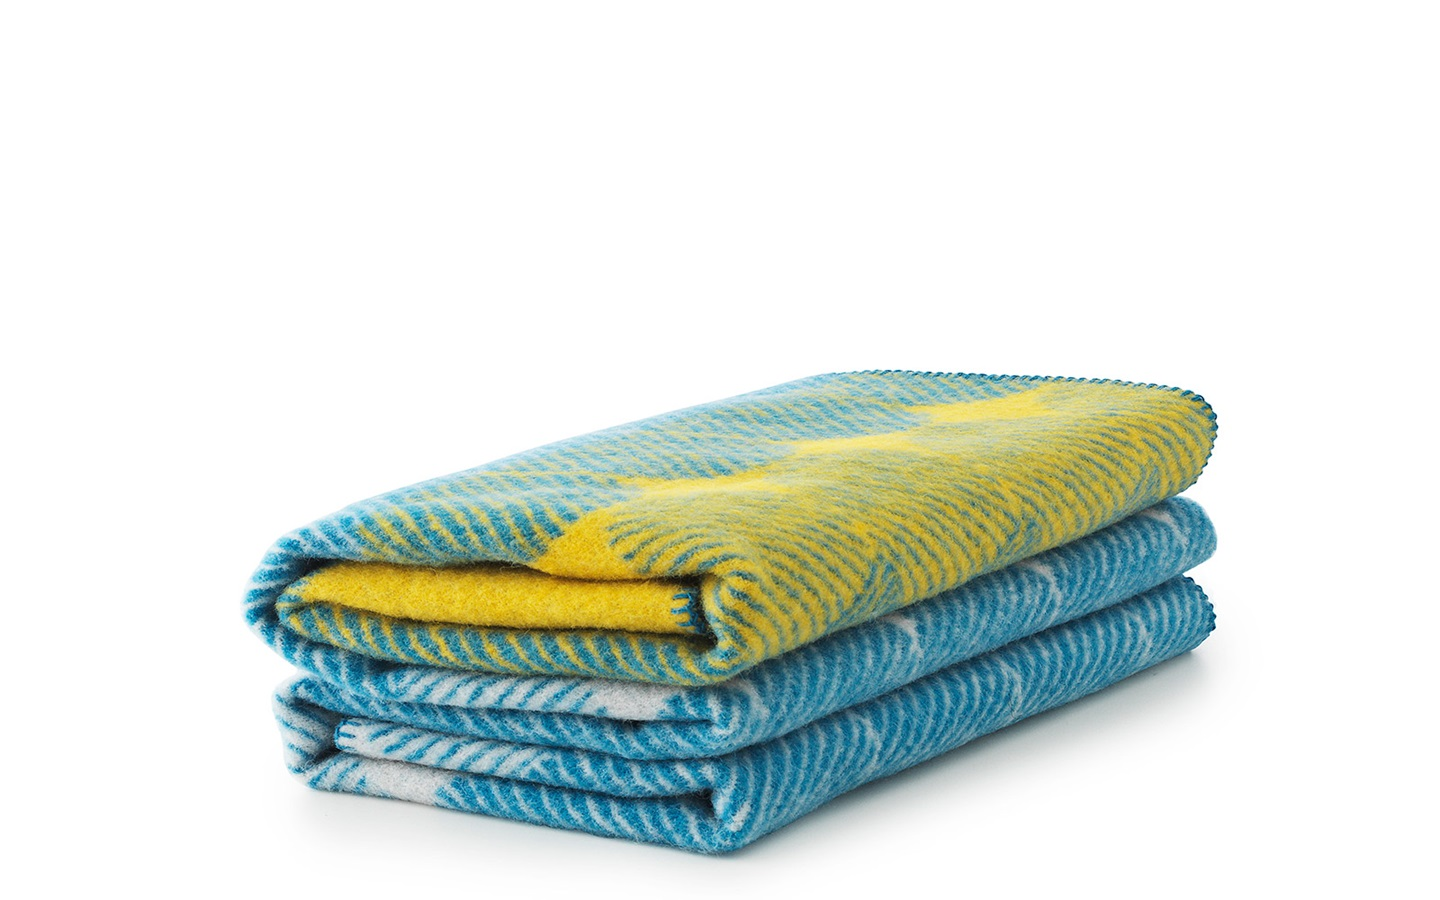 Ekko Throw Blanket Yellow Dusty Blue A Wool Throw With A